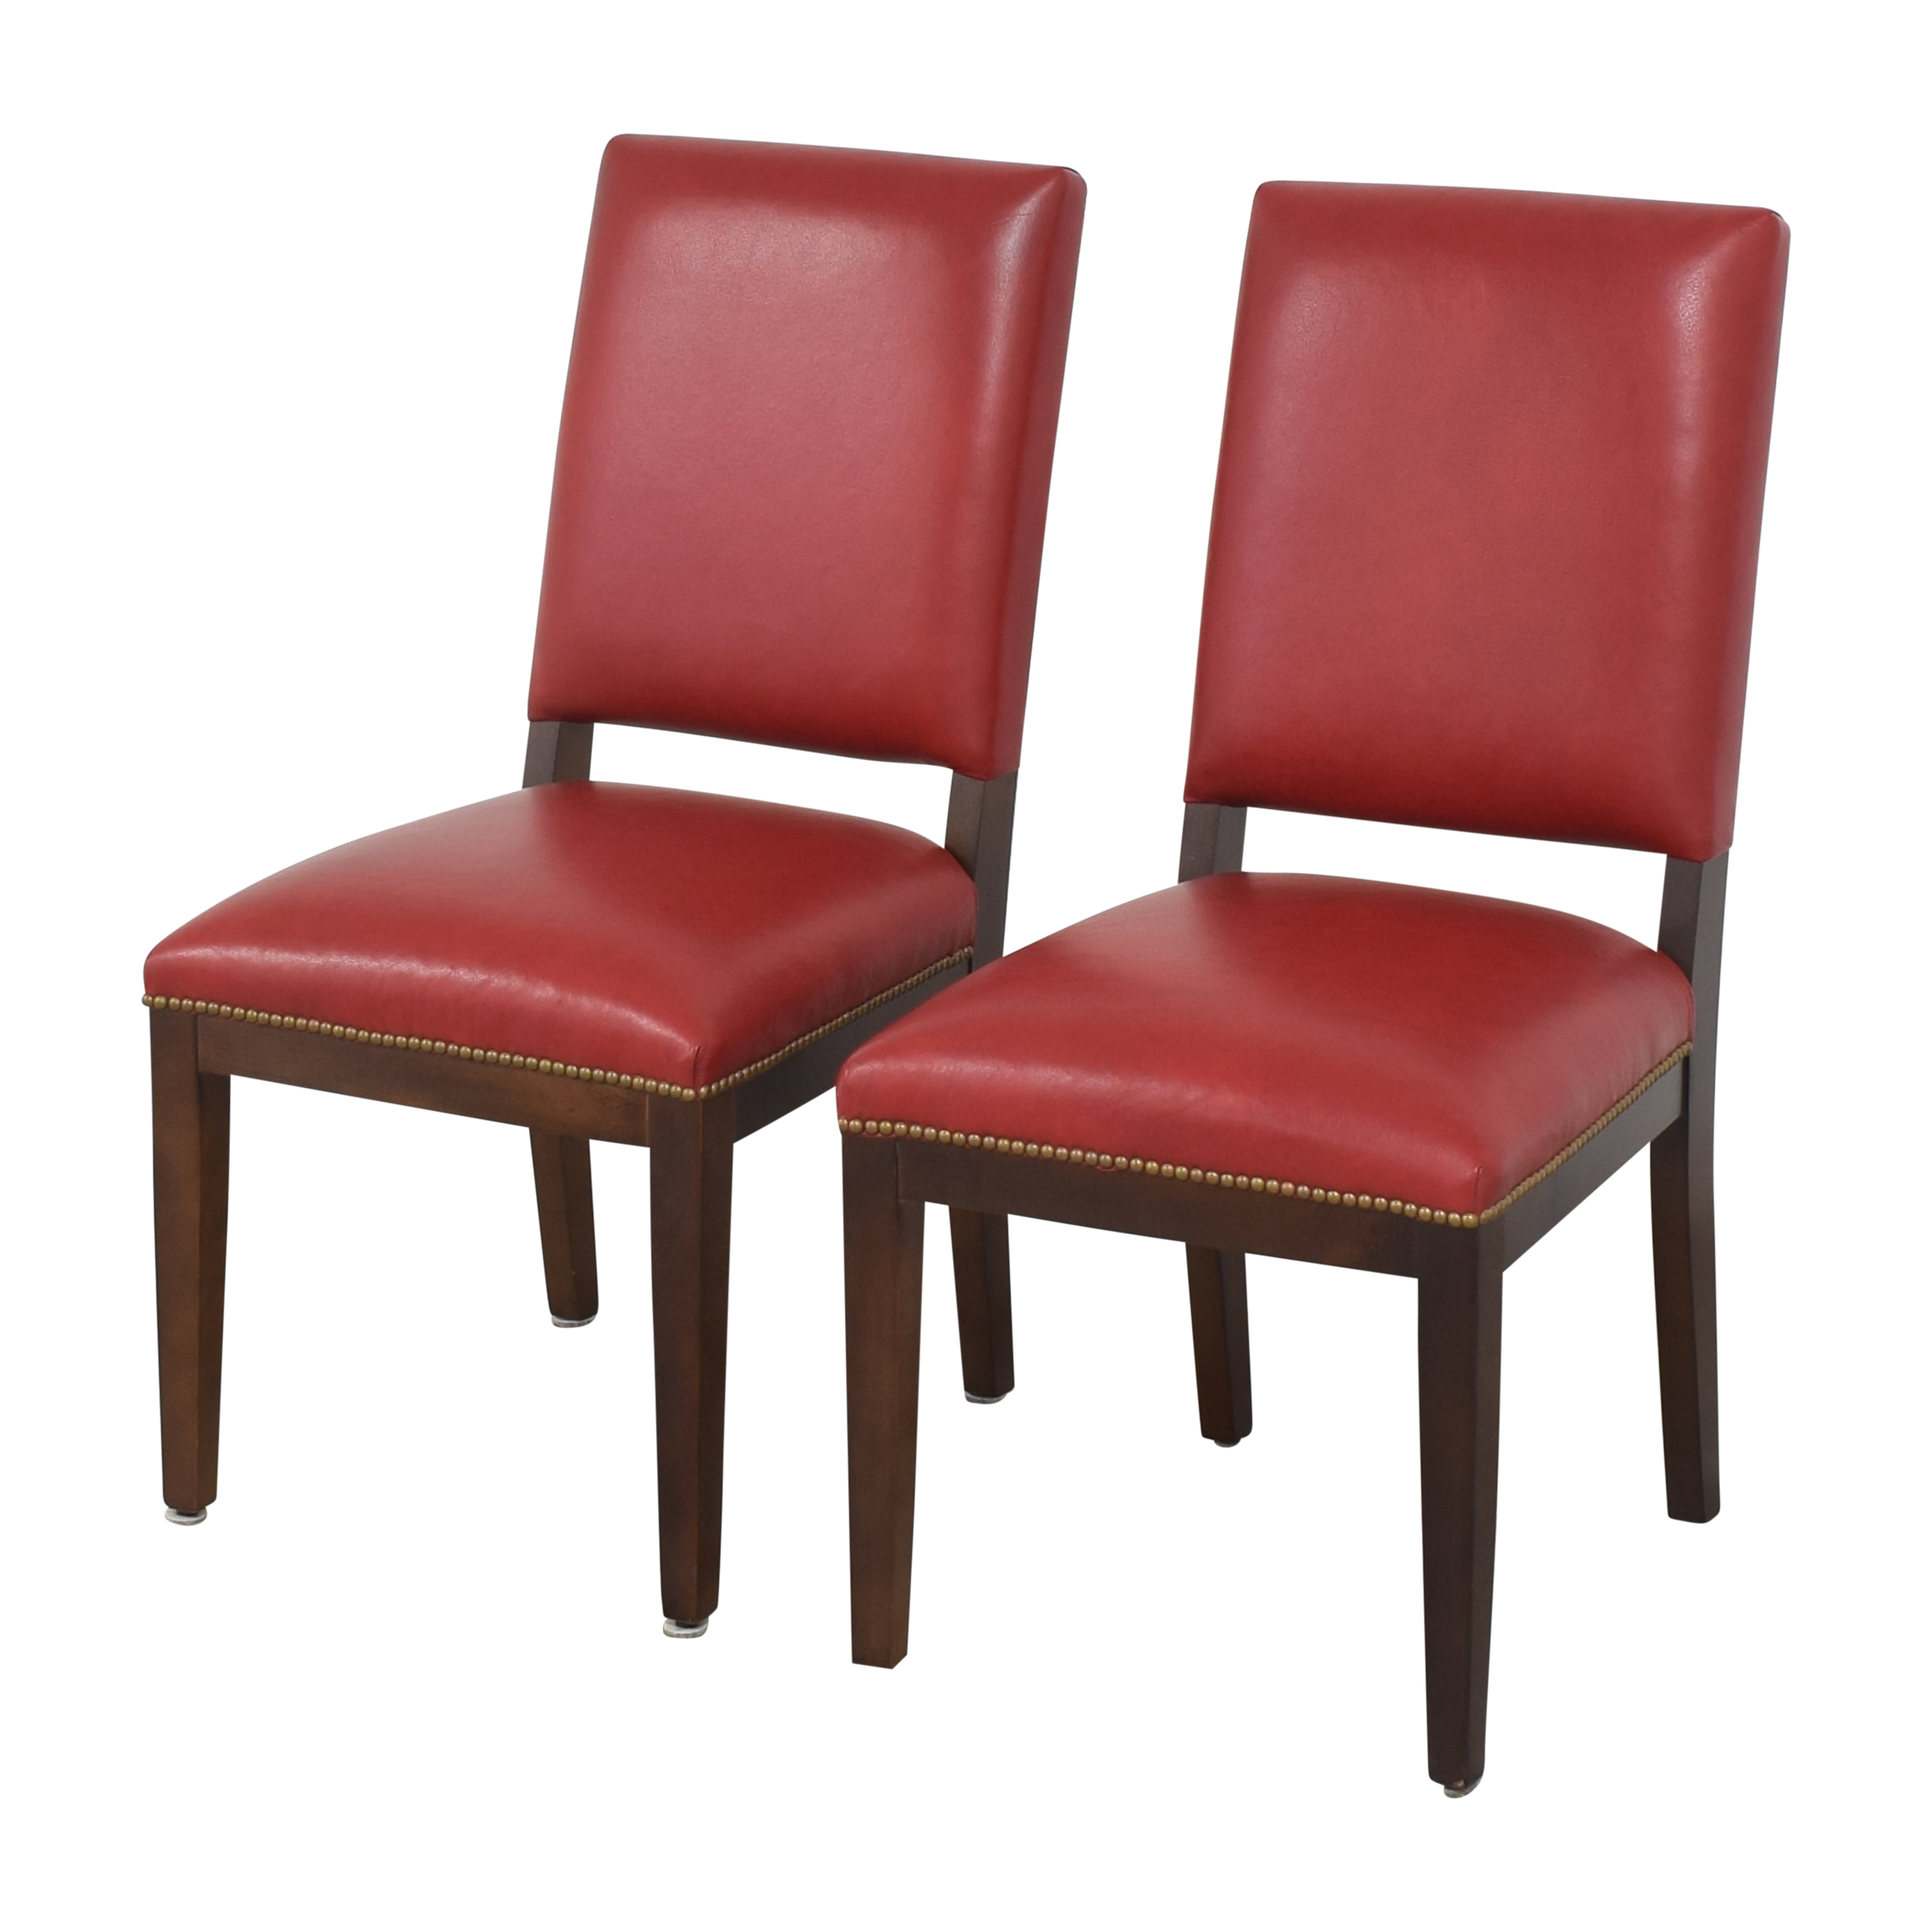 Nailhead Dining Chairs used